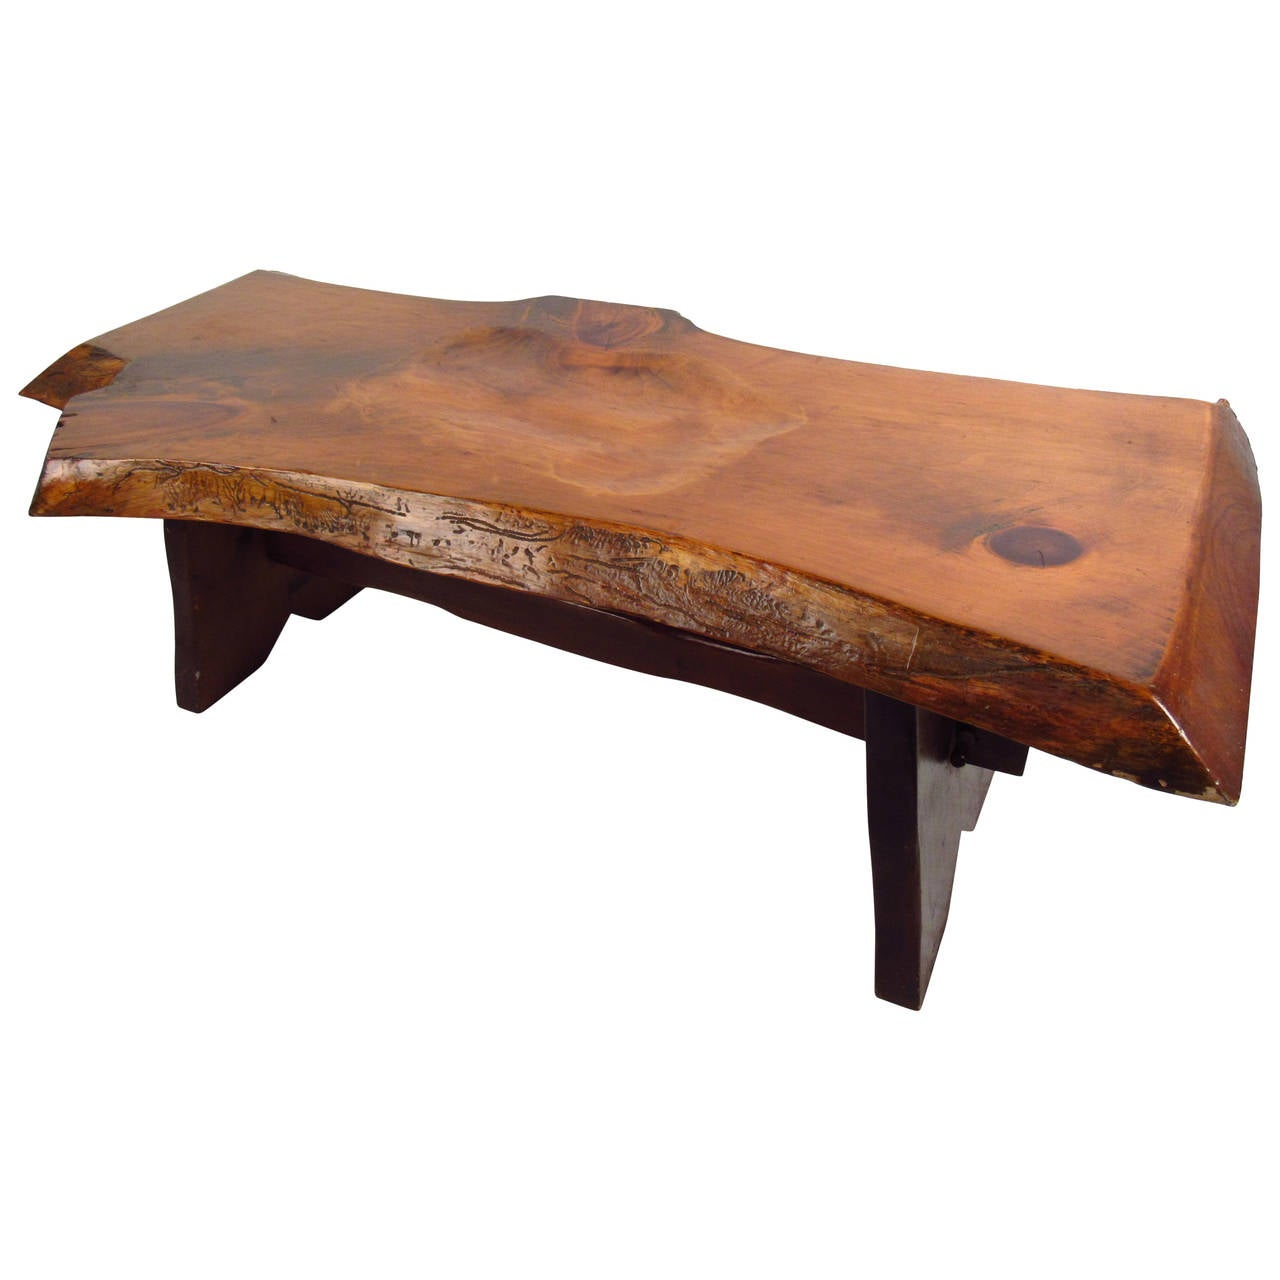 Vintage Rustic Freeform Tree Slab Coffee Table For Sale At: Live Edge Slab Bench For Sale At 1stdibs